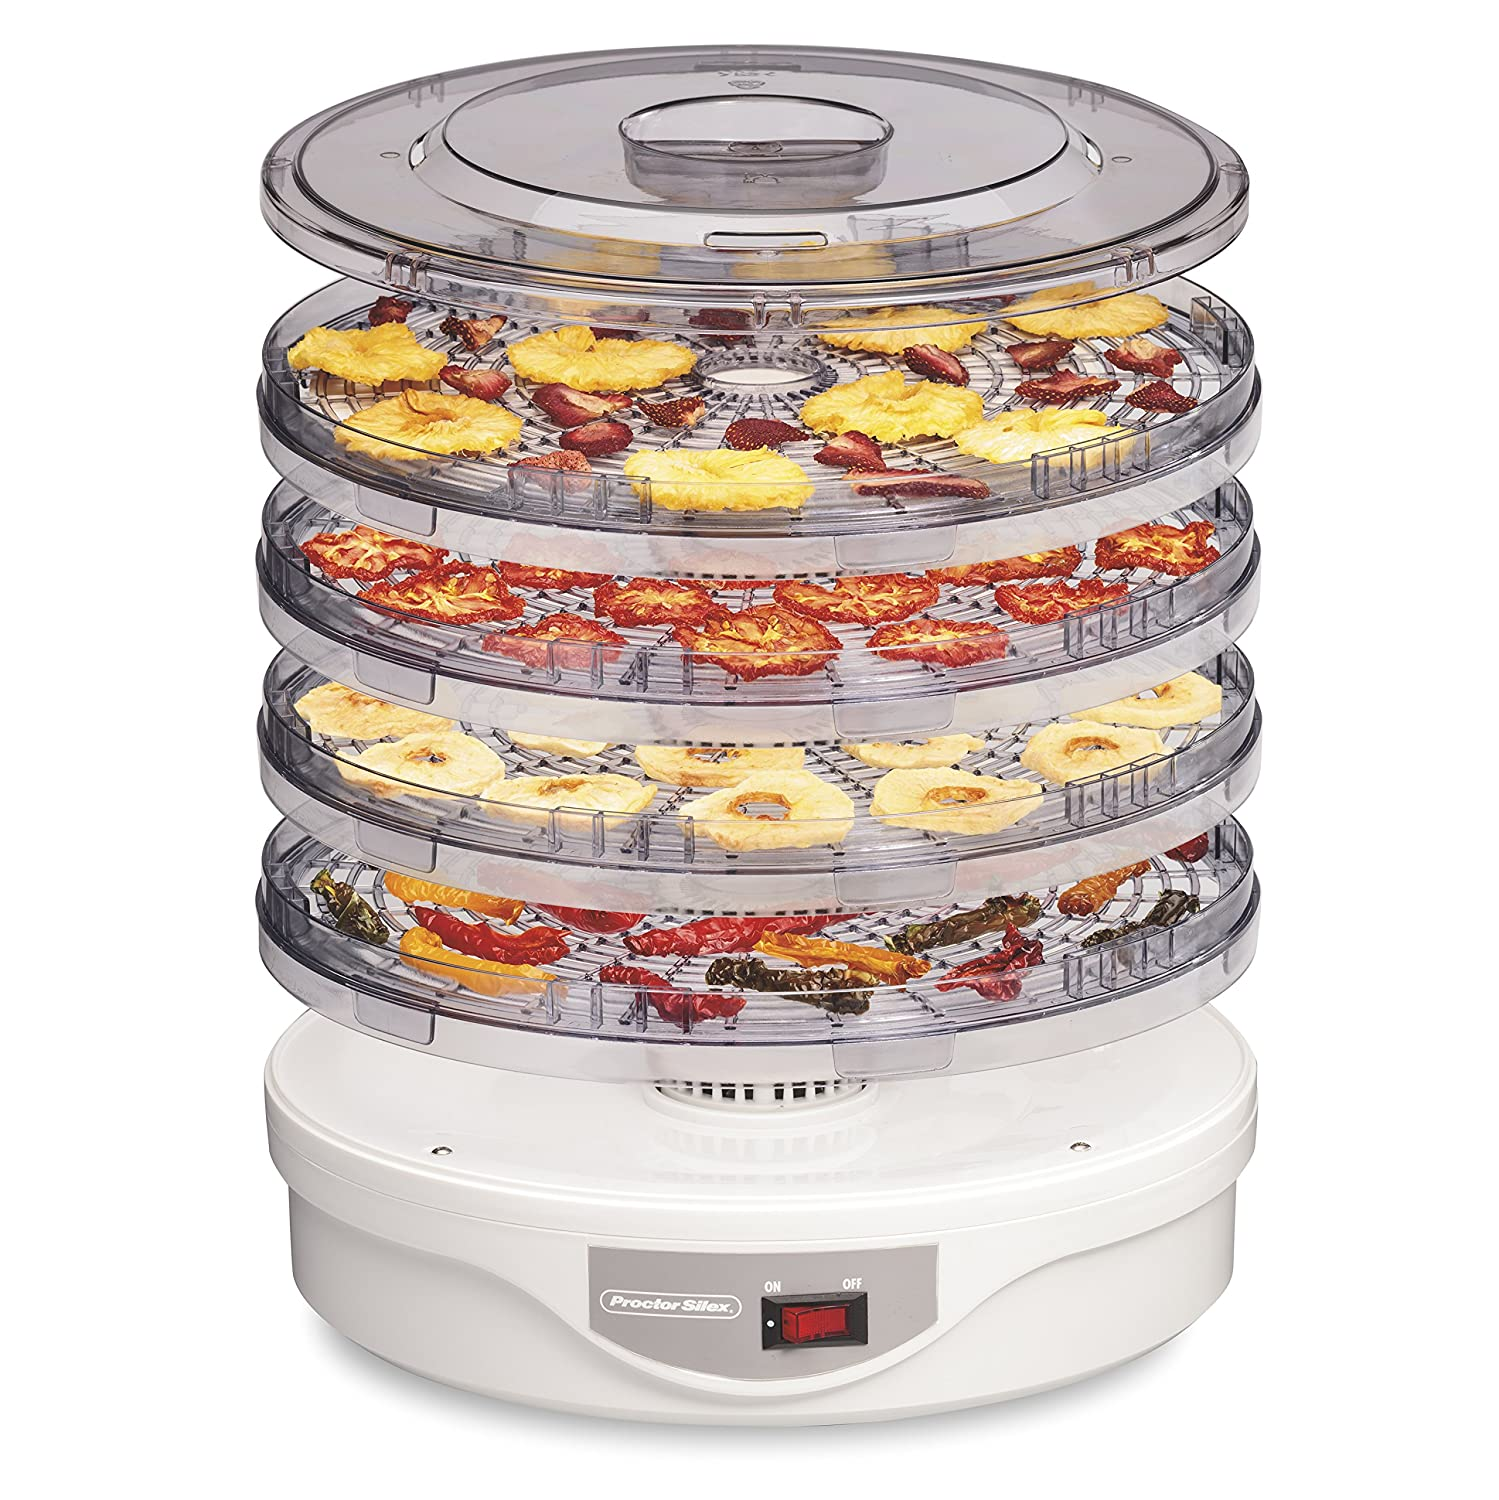 Proctor Silex 32120 Food Dehydrator Machine for Jerky, Fruit, Vegetables & more, 4 Tray, White